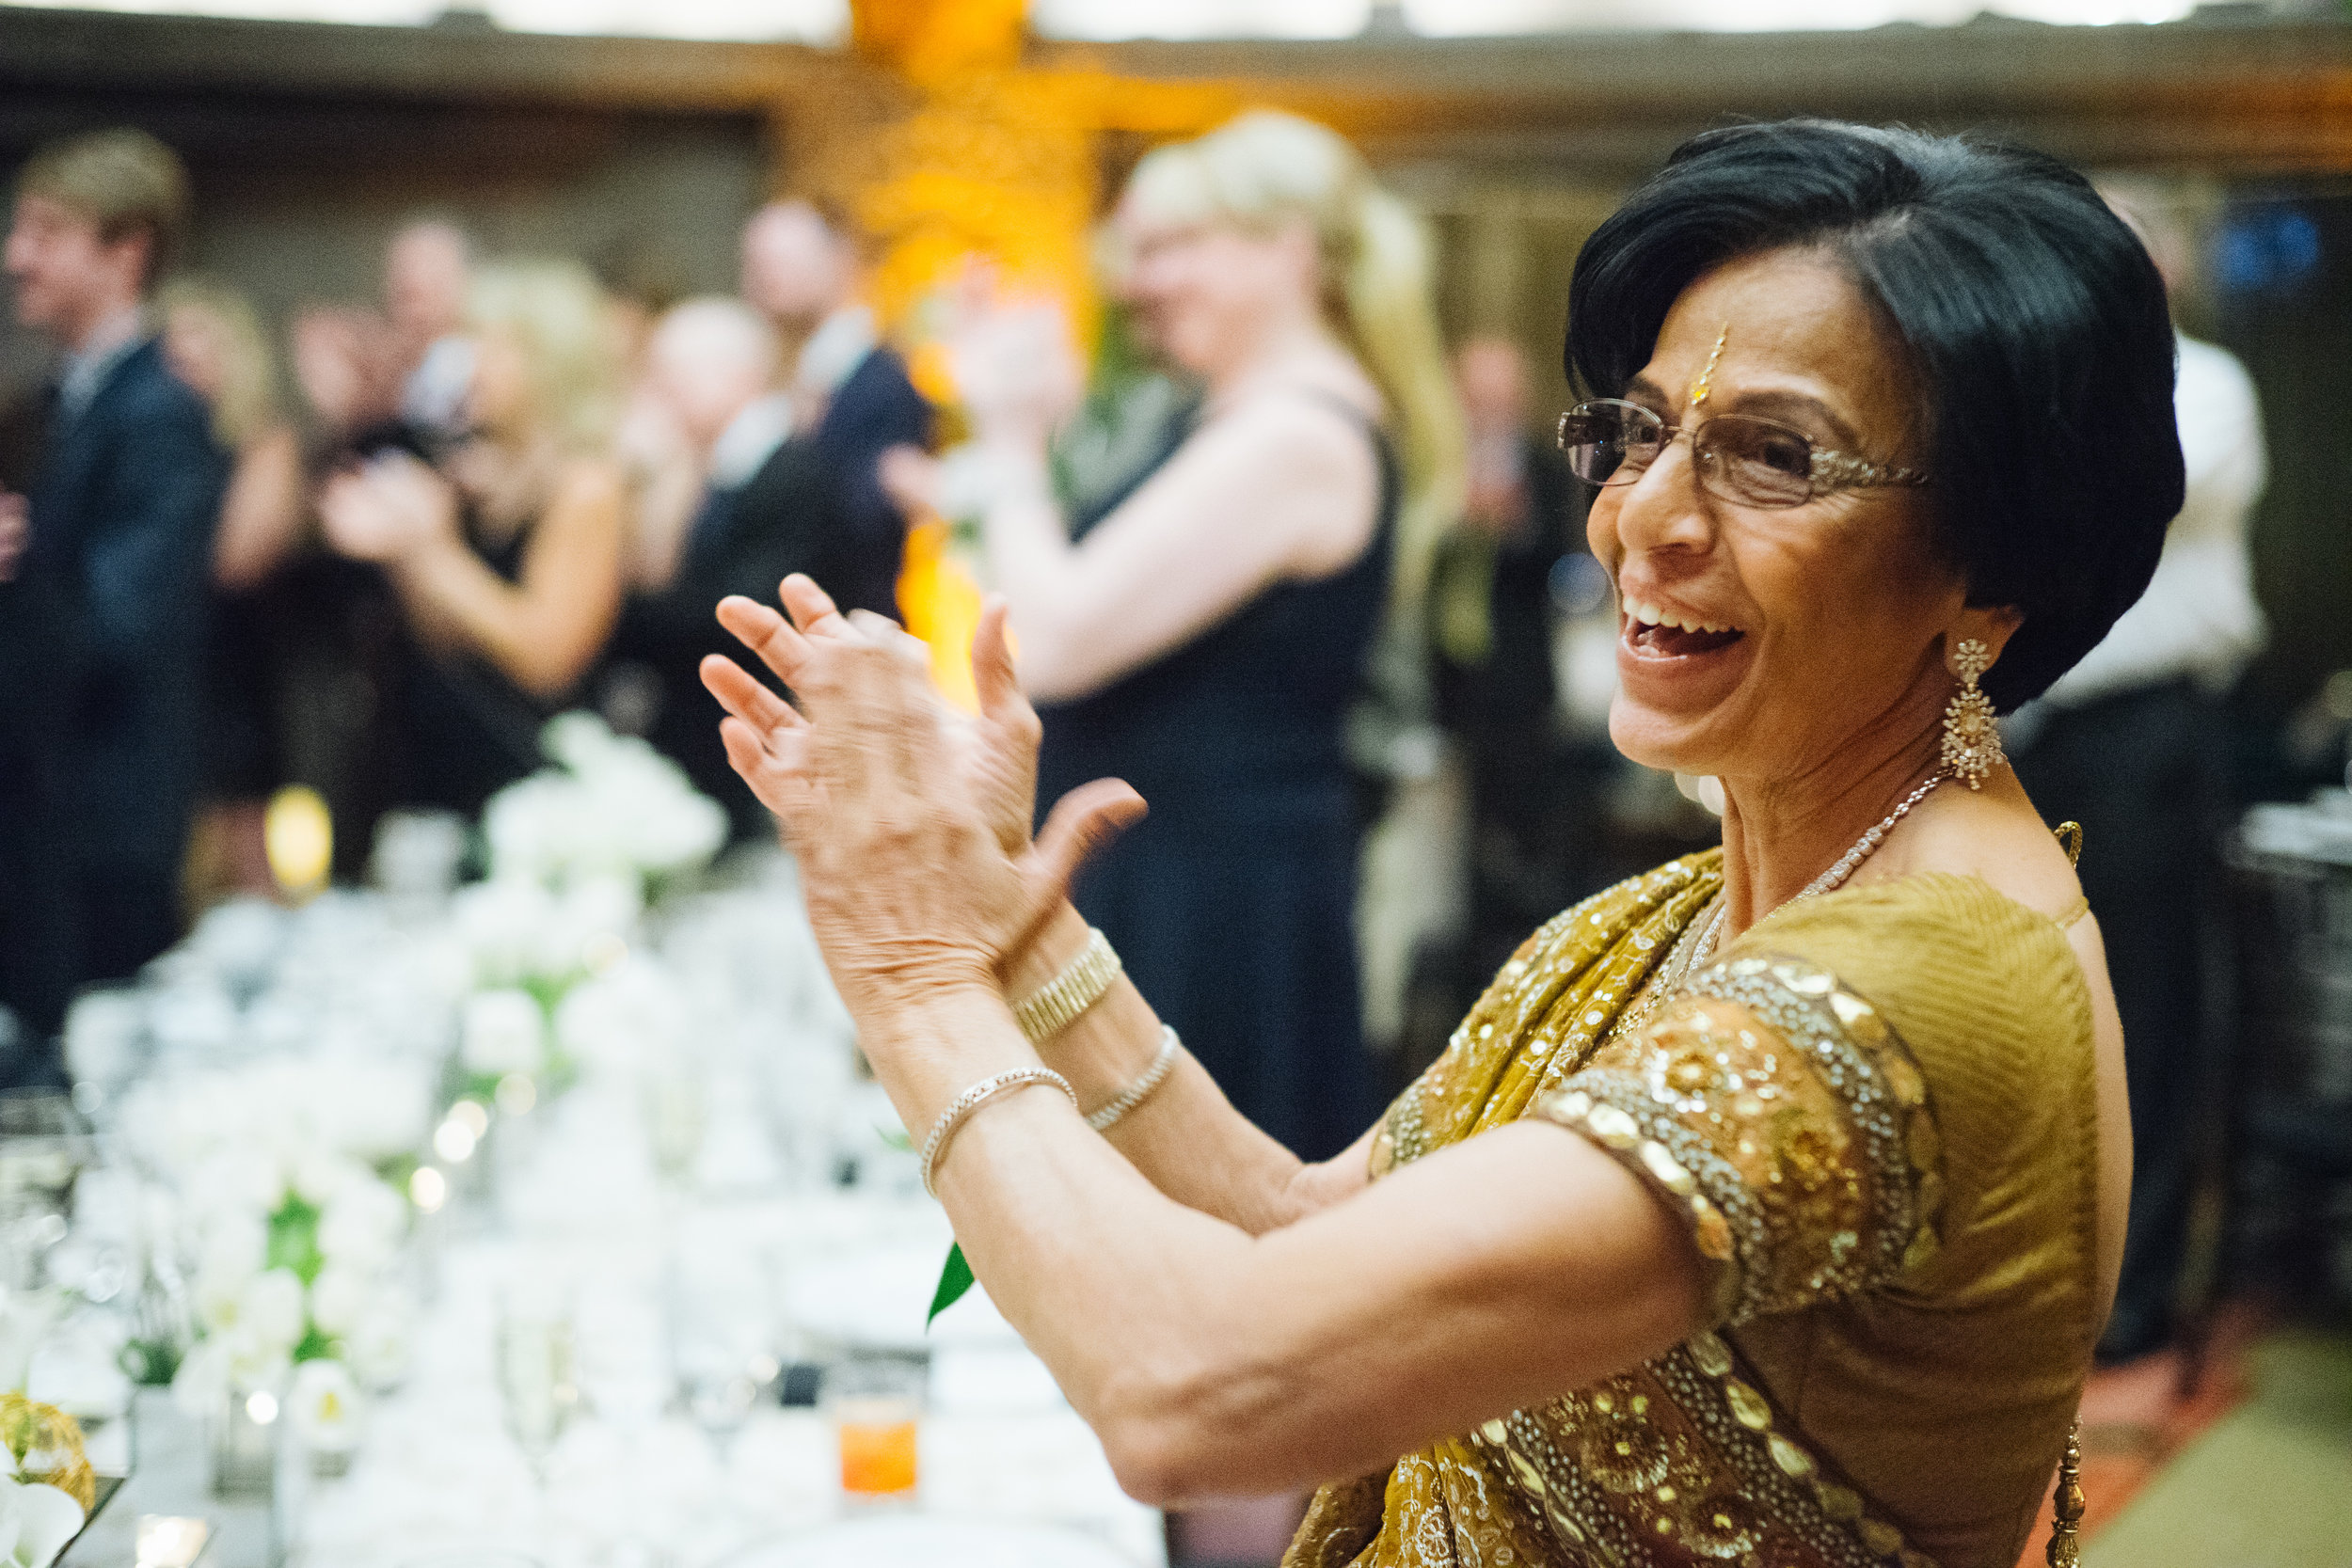 22 happy mom mother of the groom gold wedding sari wedding toast Life Design Events photos by Keith and Melissa Photography.jpg